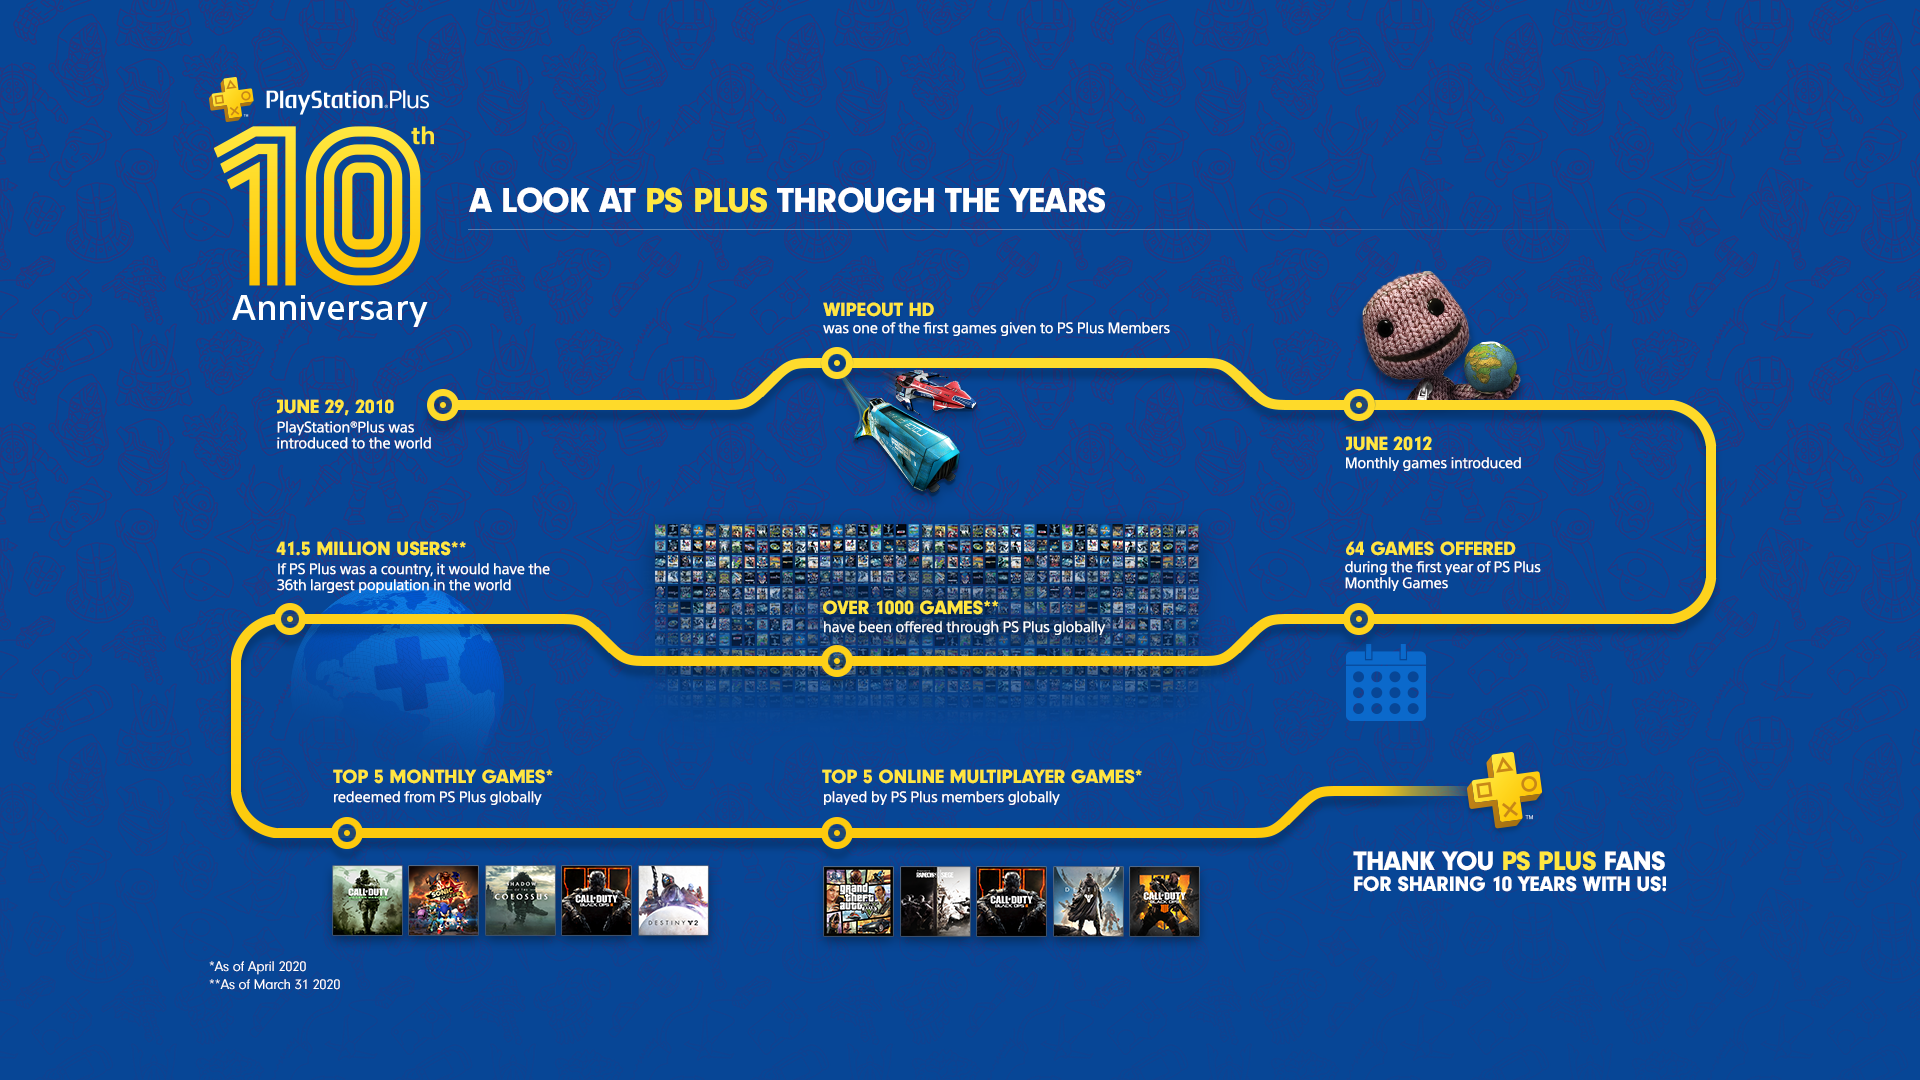 PS Plus 10th Anniversary